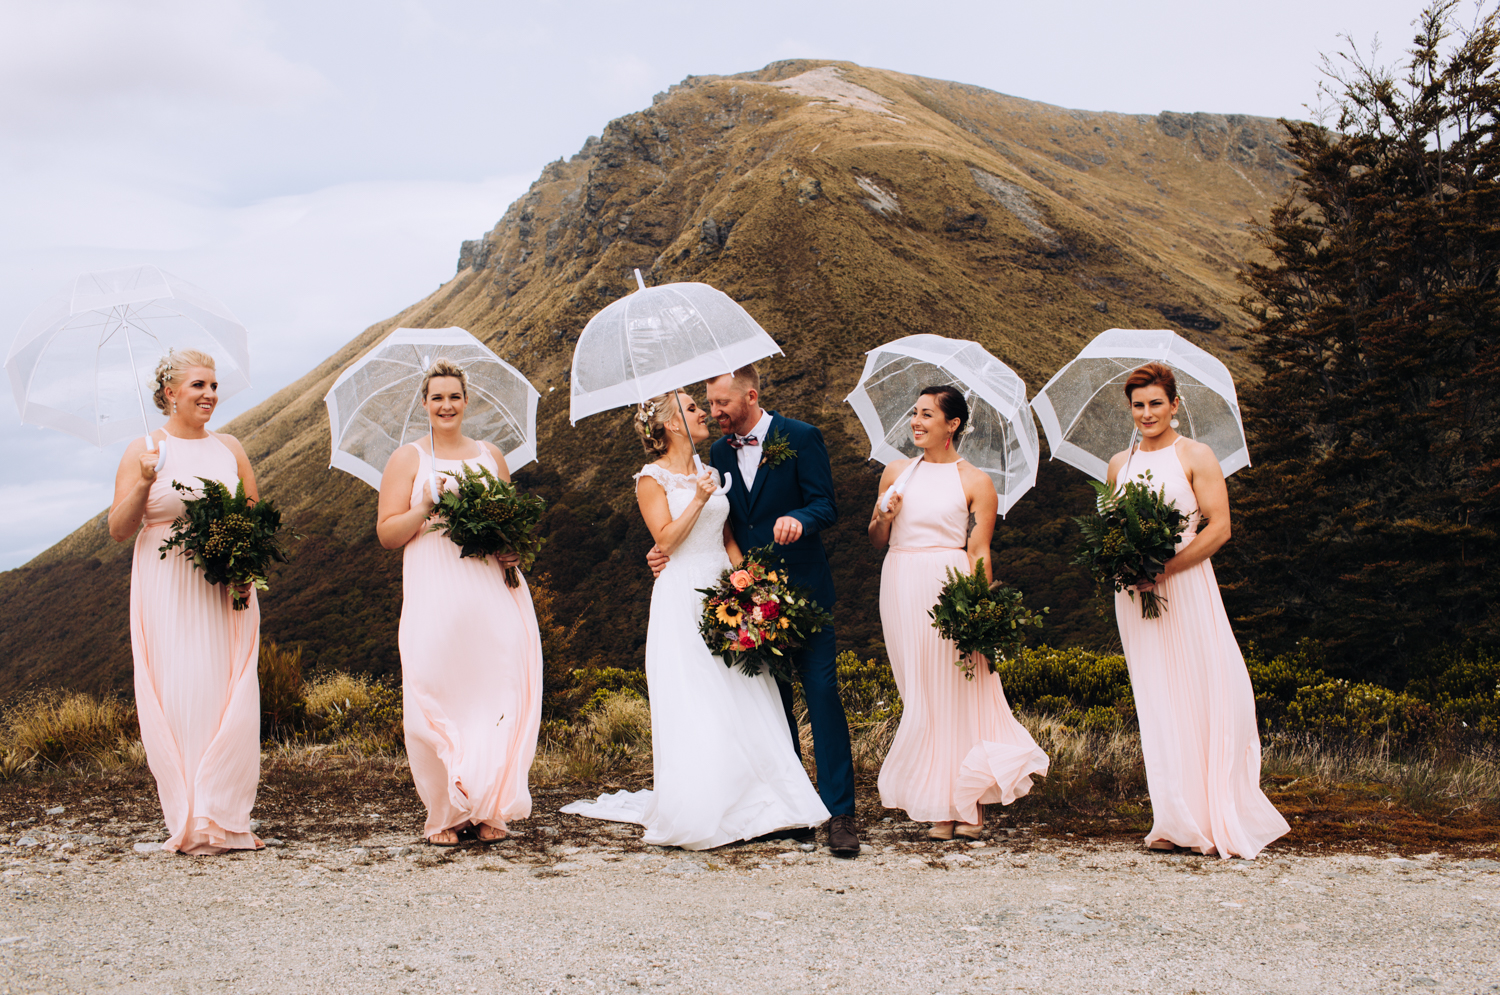 wanaka wedding photographer videographer-424.jpg